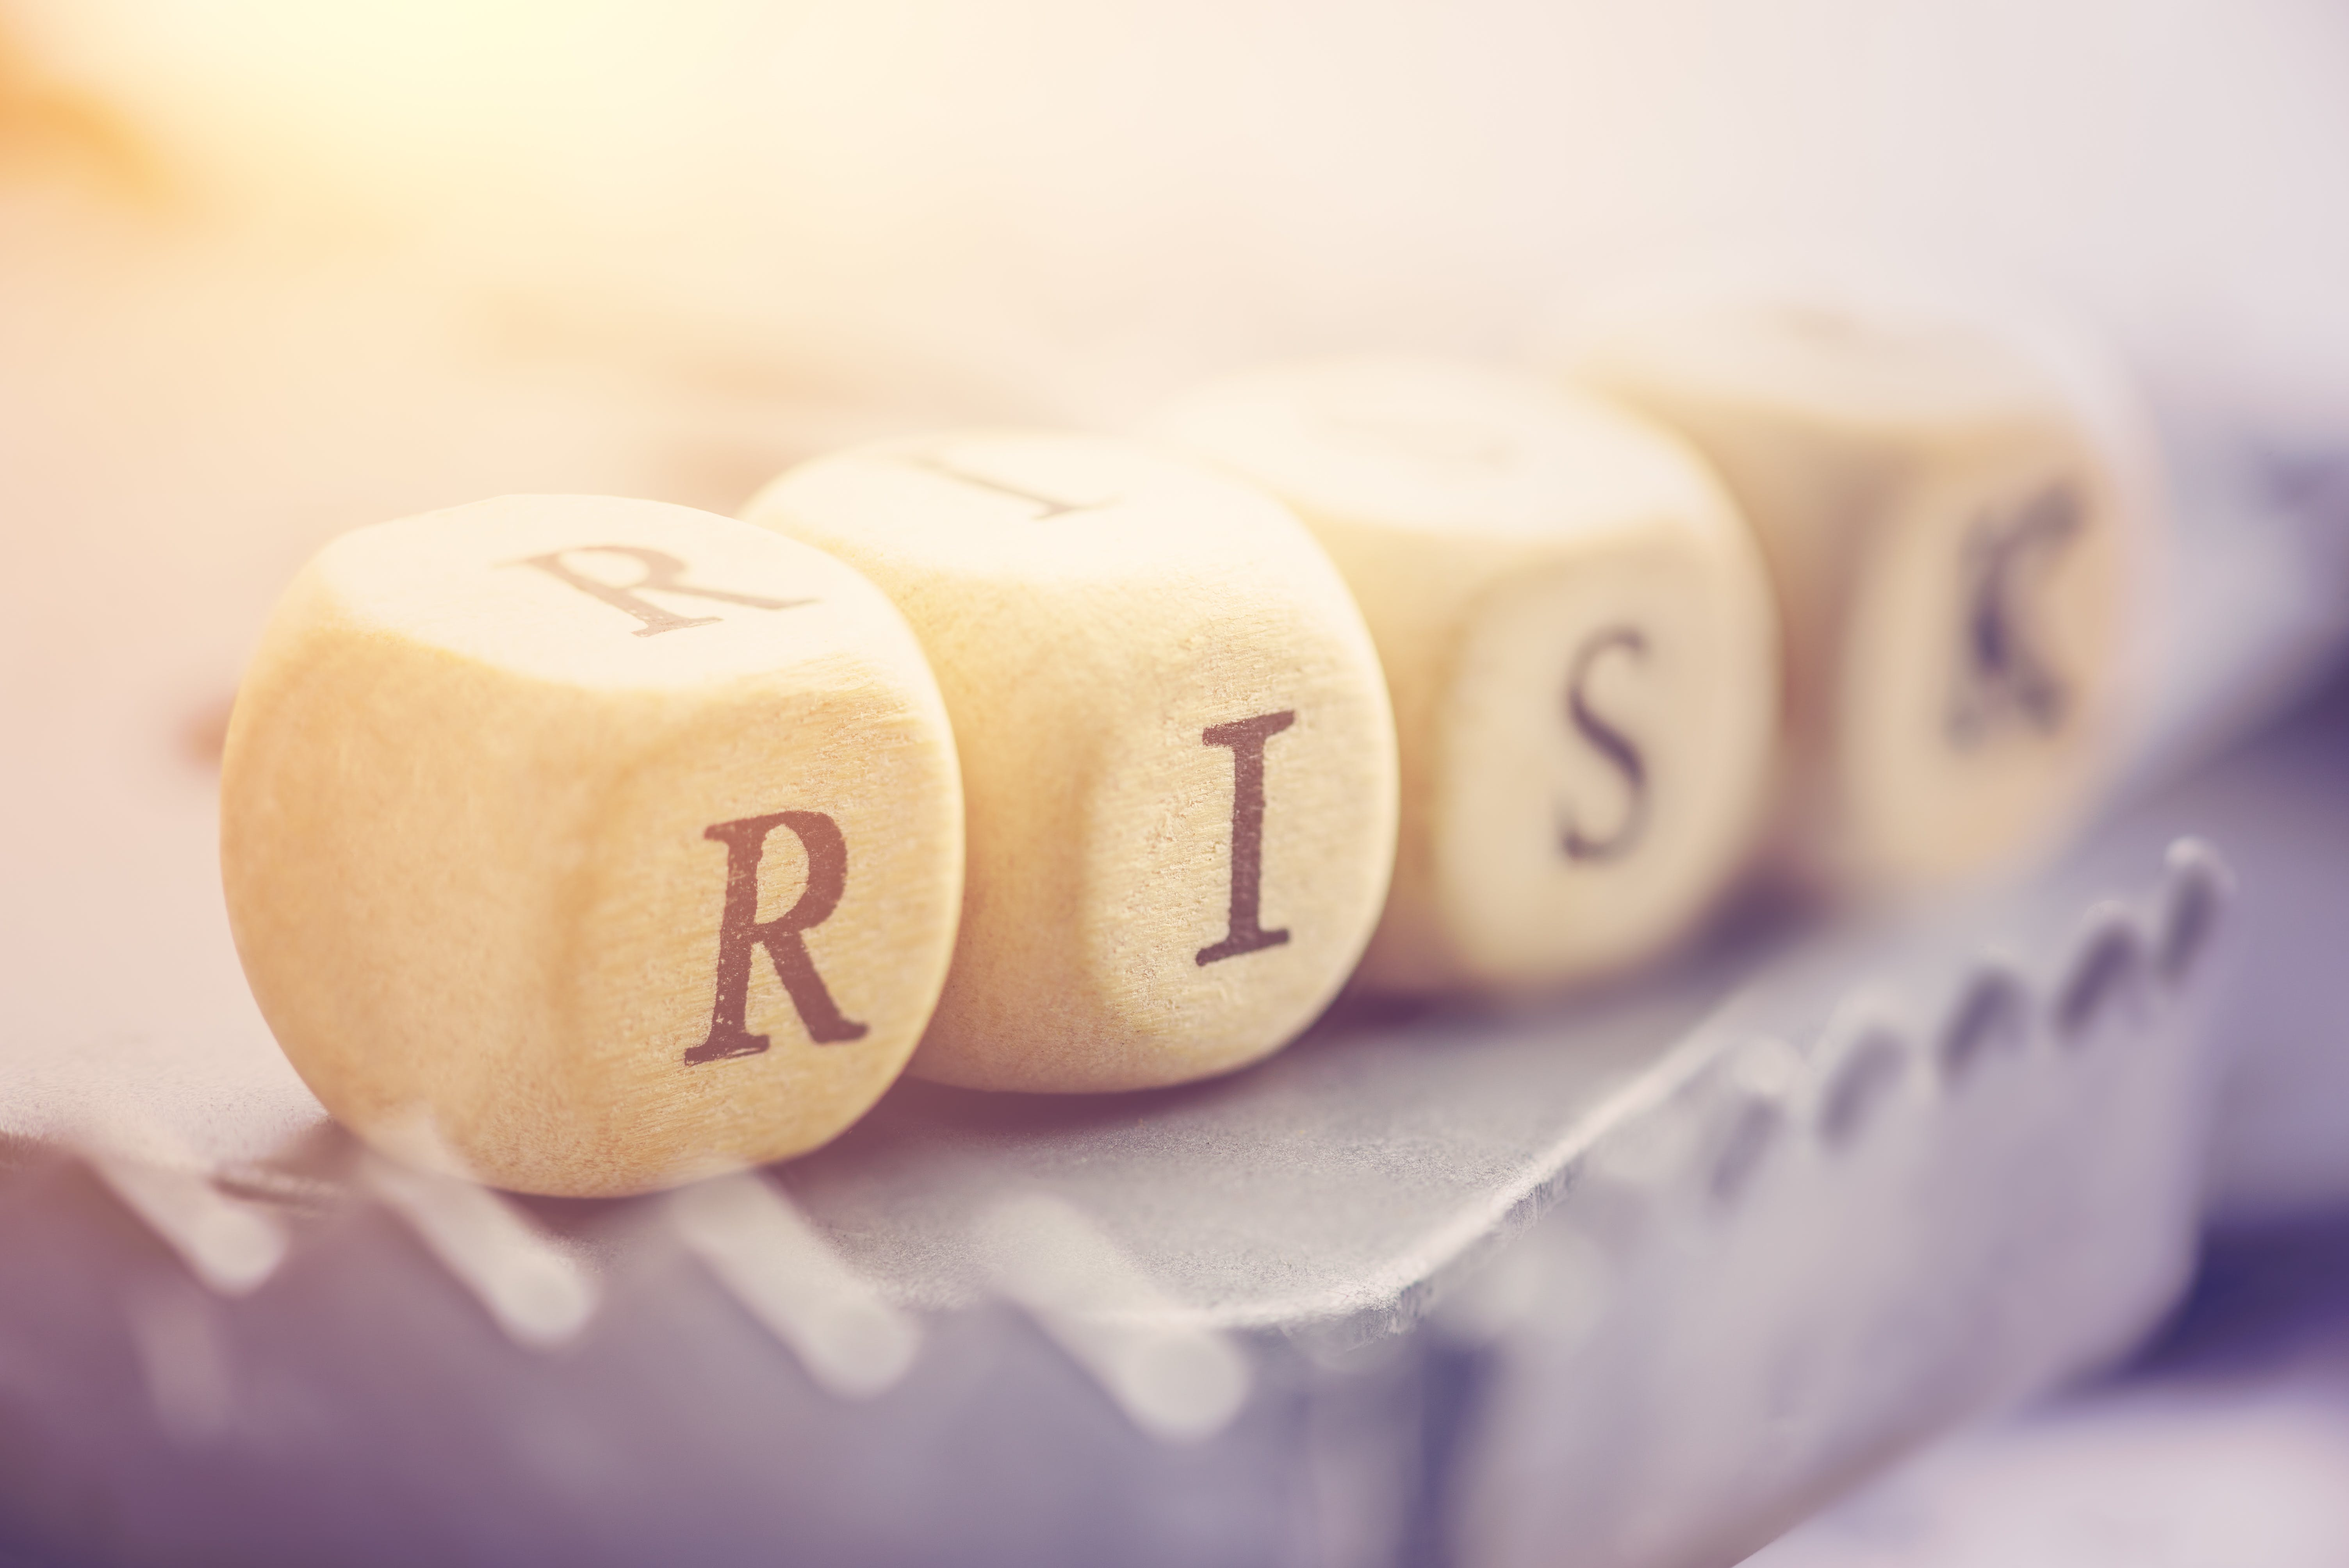 """Four dices are arranged in a word """"RISK"""" on a rat trap. Risk involves the chance an investment's actual return will differ from expected return, includes possibility of losing of original investment."""